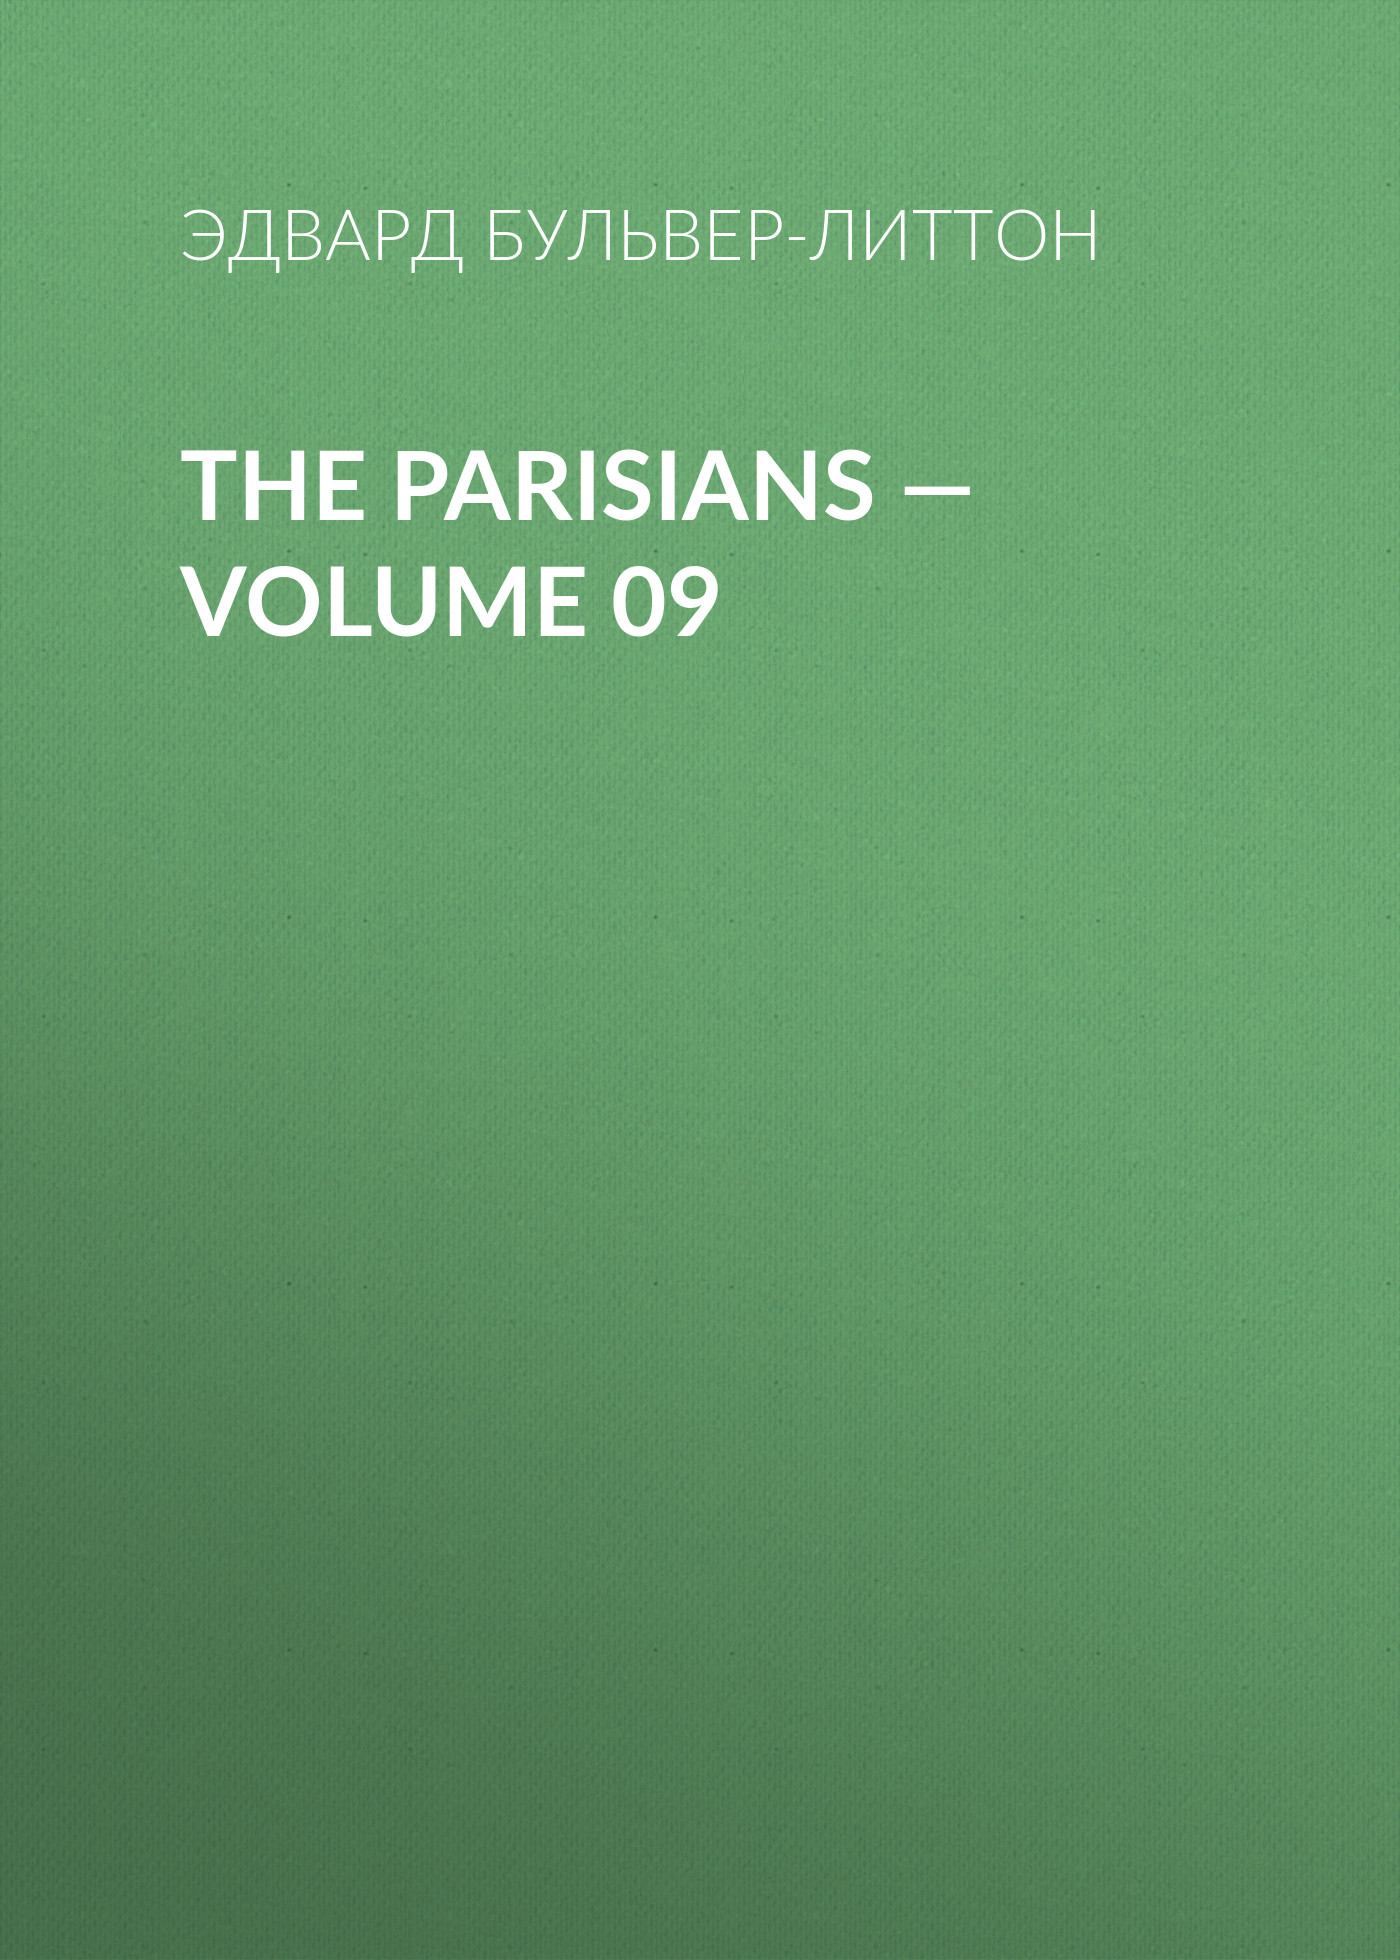 The Parisians — Volume 09